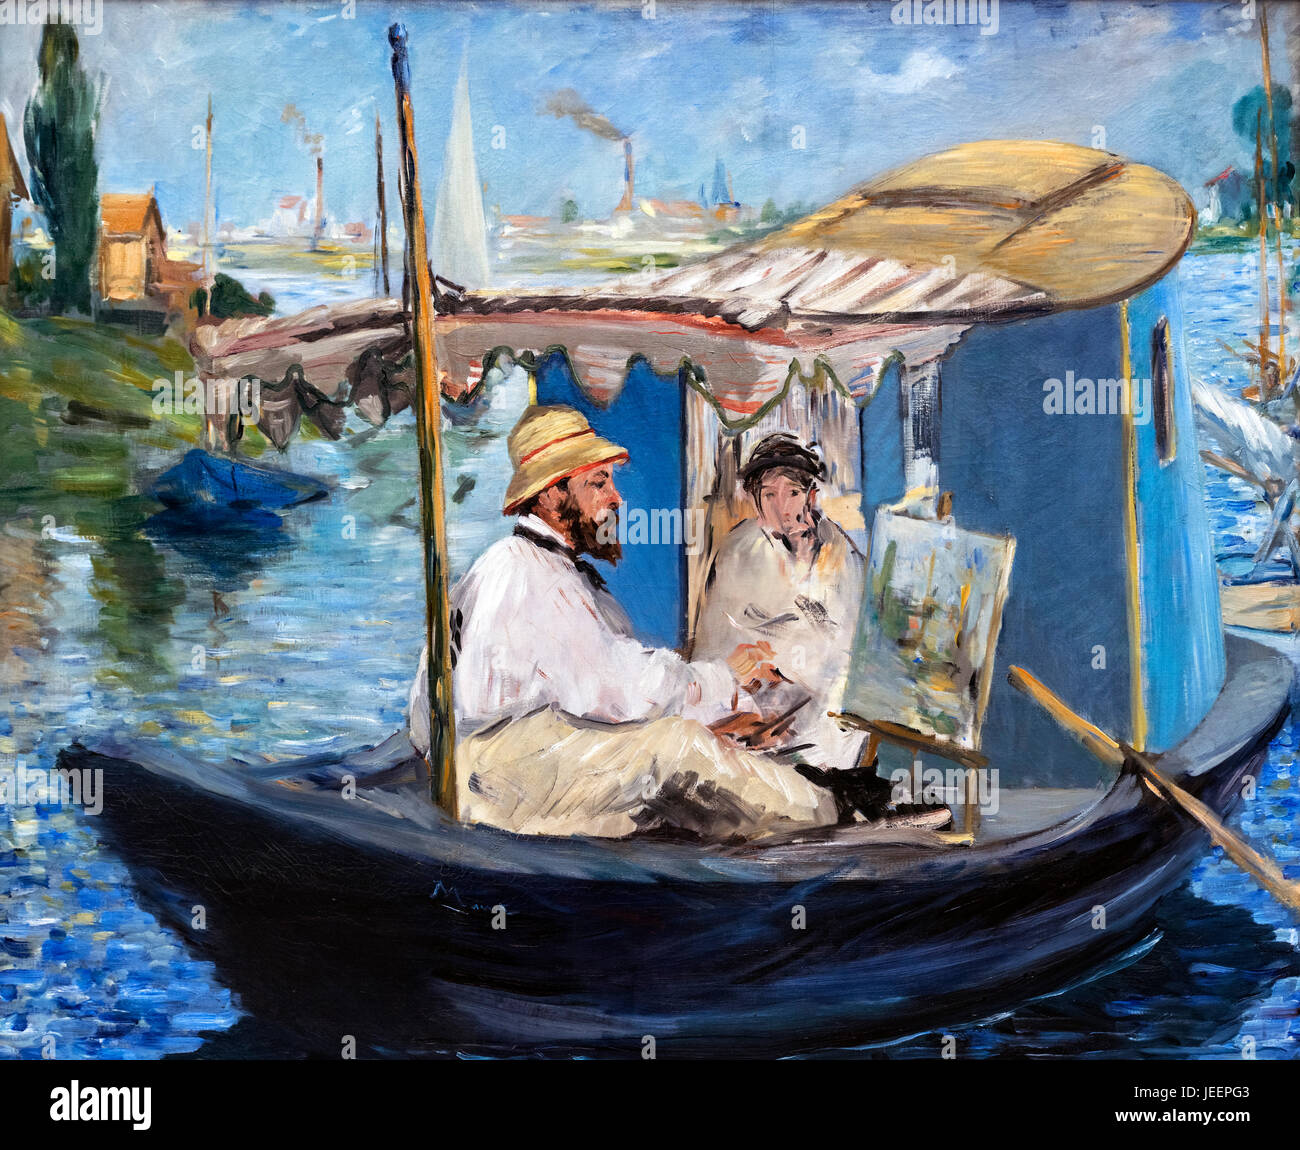 Monet Painting on his Studio Boat by Edouard Manet (1832-1883). Portrait of the French impressionist Claude Monet - Stock Image